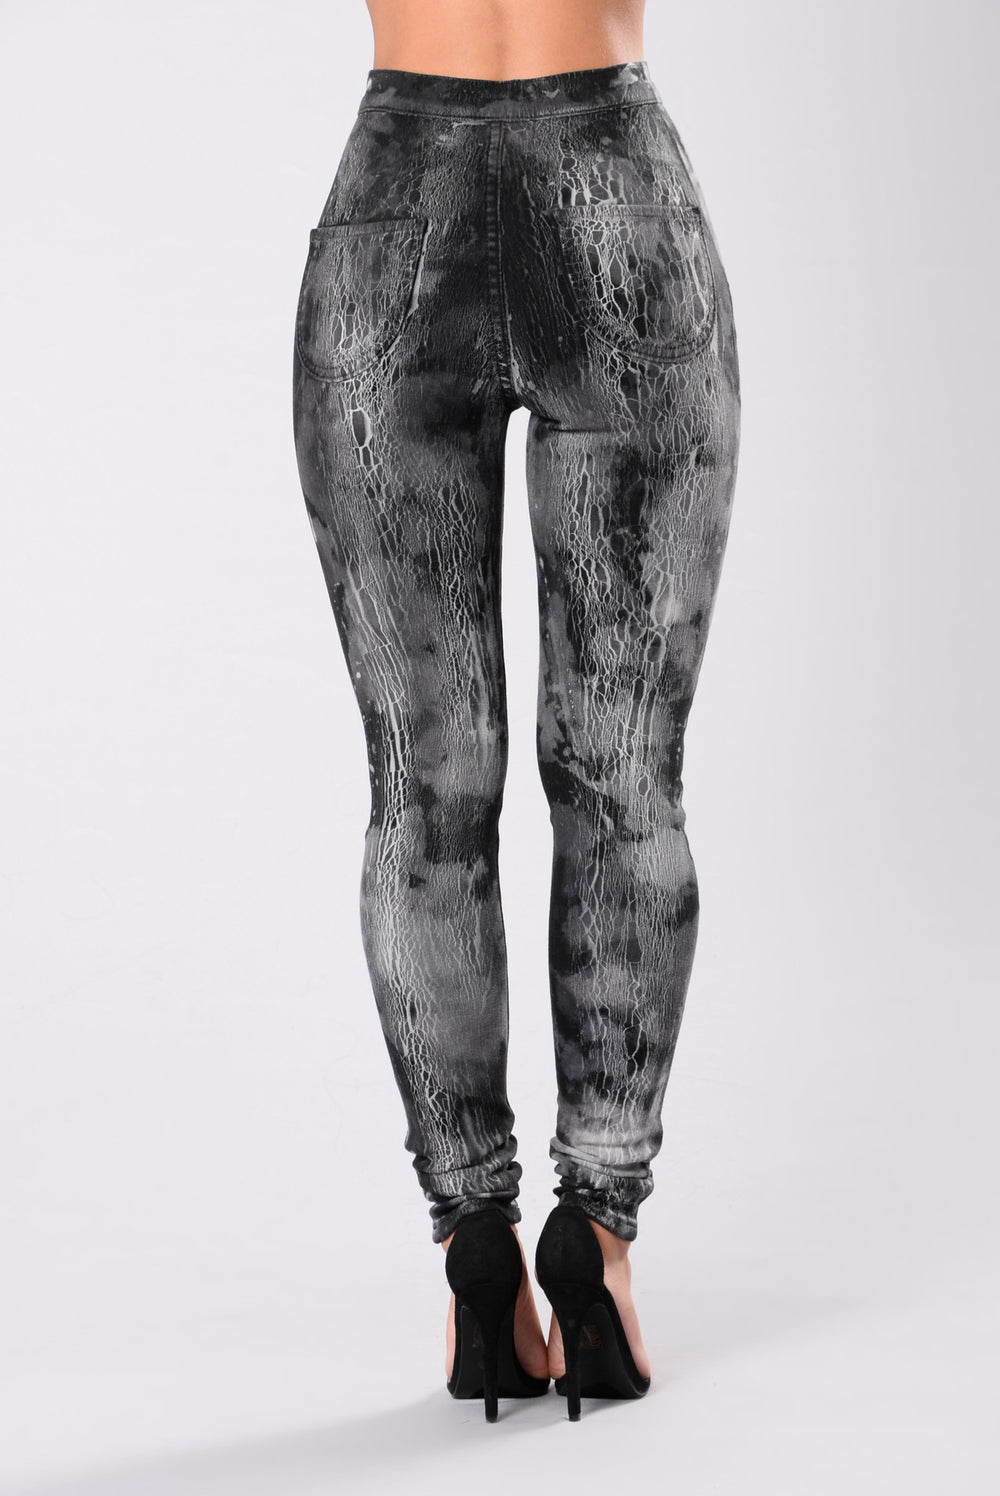 Gone For A Minute Jeans - Black